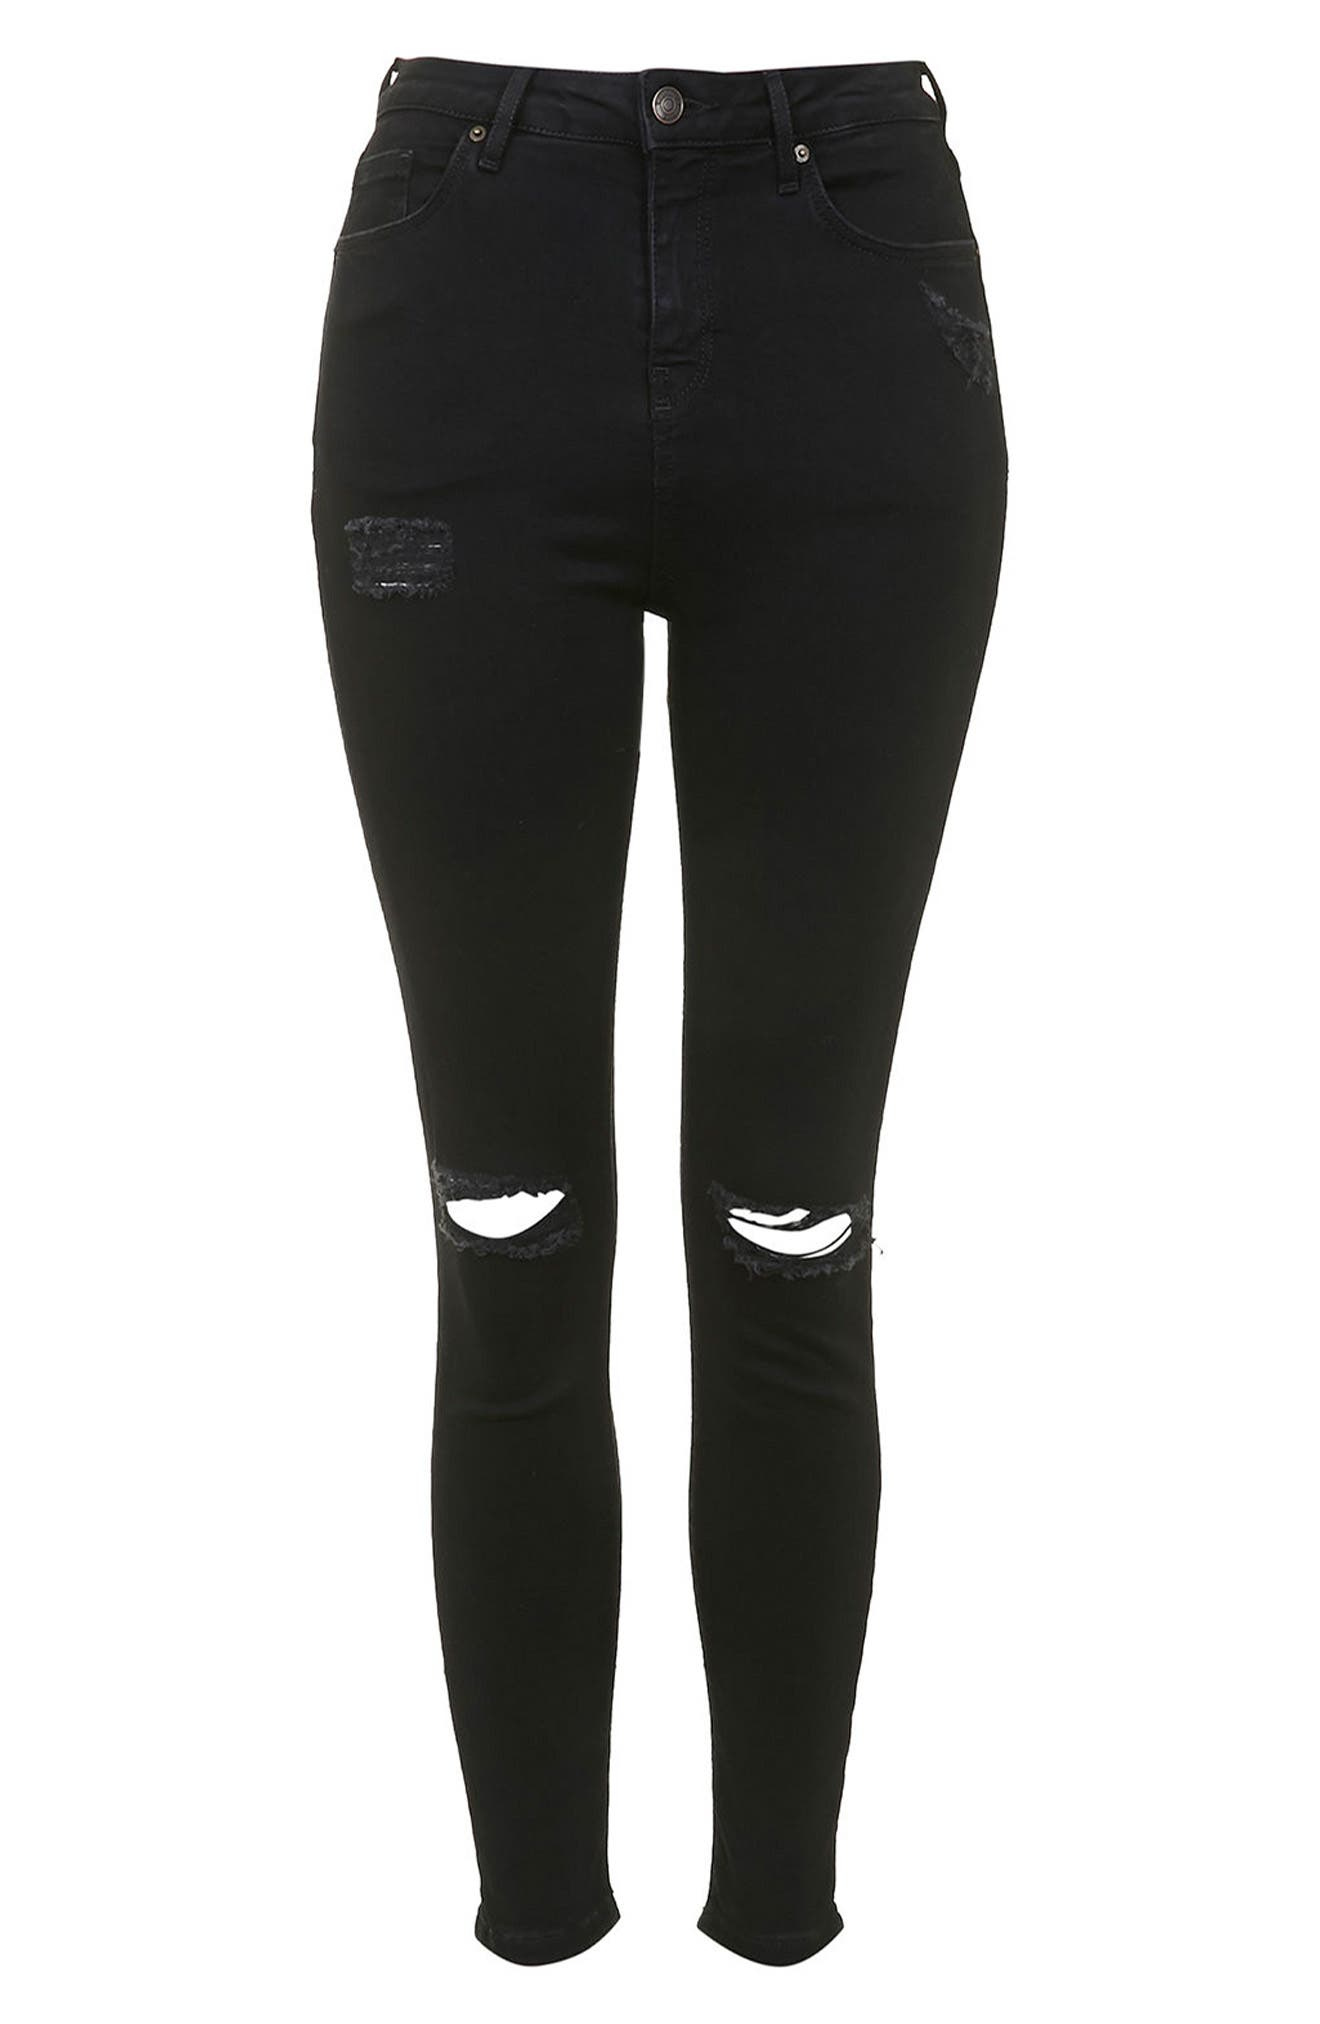 Moto Jamie Ripped Jeans,                             Alternate thumbnail 5, color,                             Black